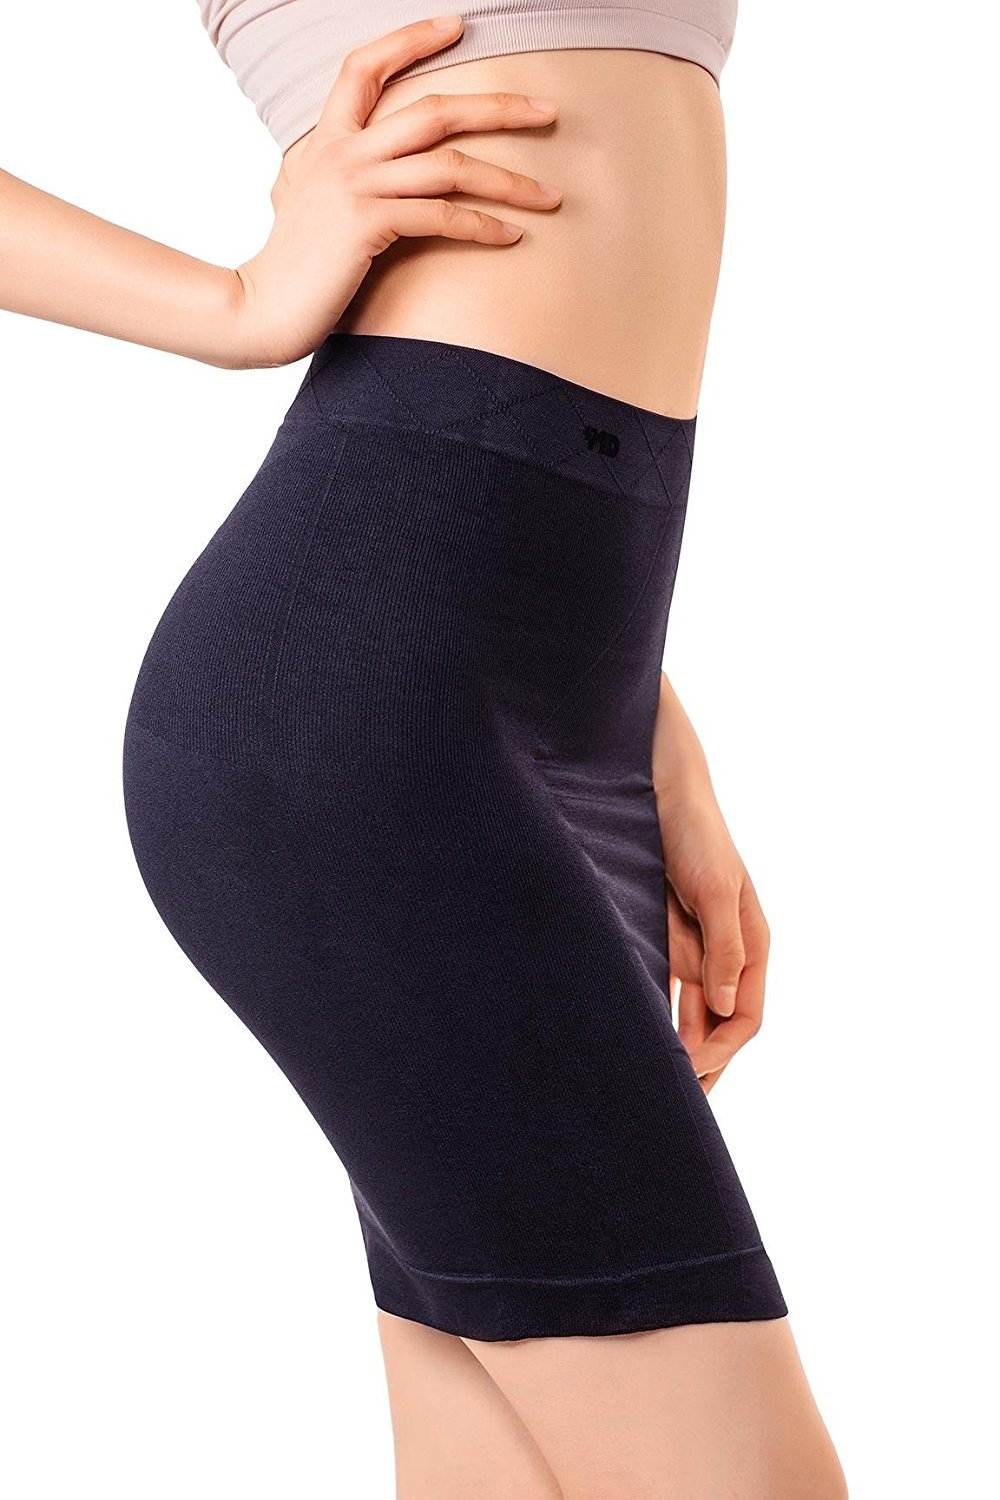 cea63c1e17c Half-slips from Wacoal are ideal for stay-put support under short skirts and